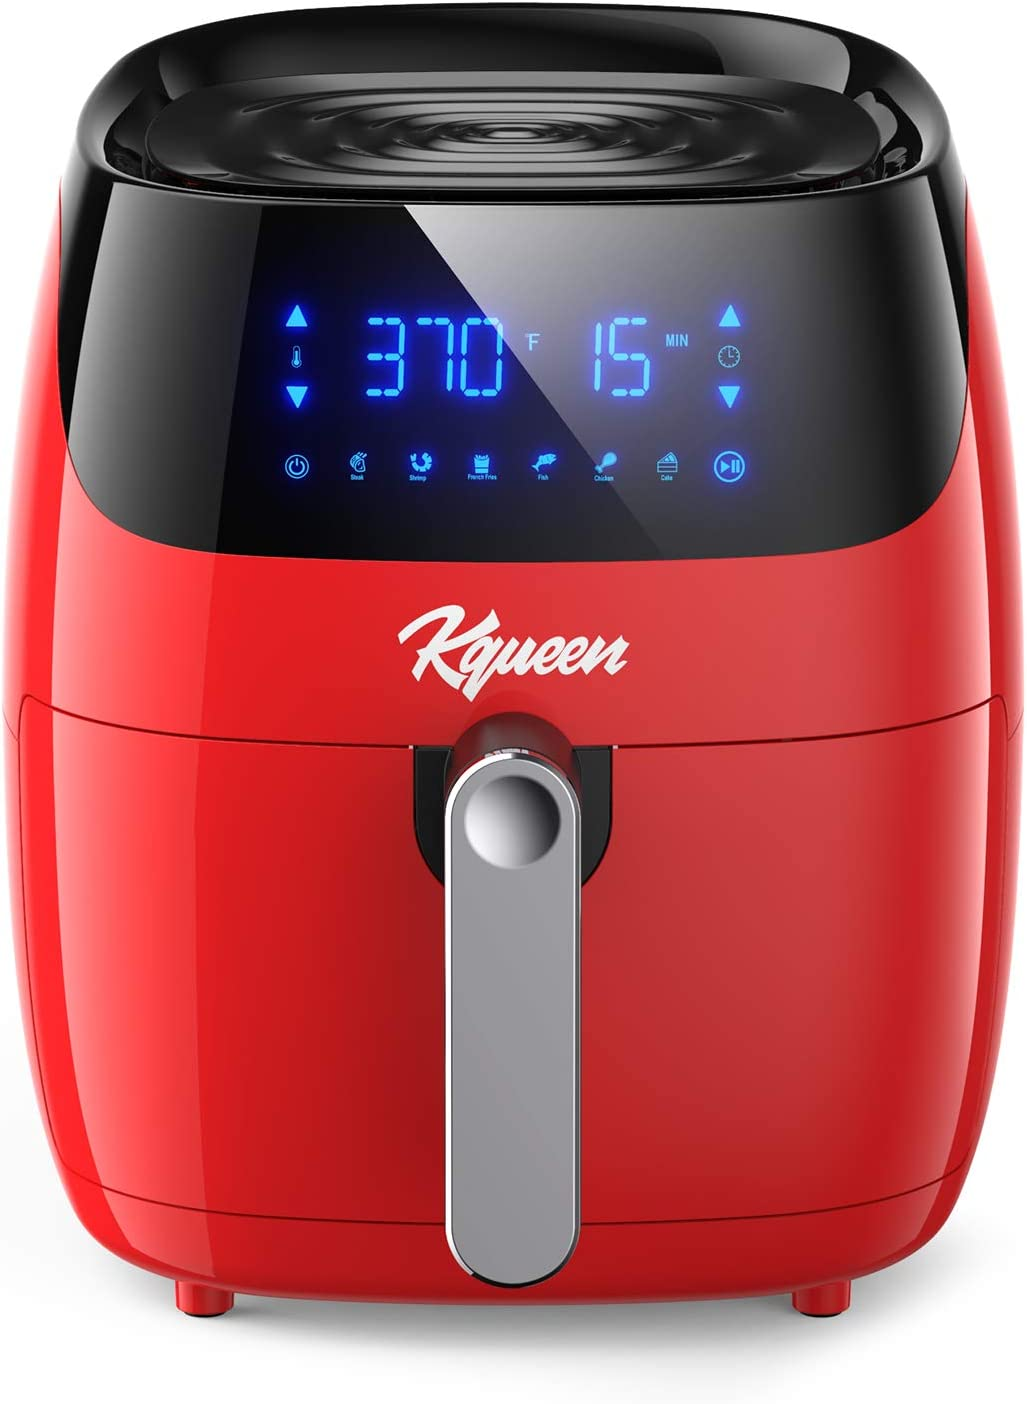 KQUEEN Air Fryer, 4.7QT Airfryer Oven with Digital Touch Screen, 80 Recipes and 6 Preset Menus, 1400W Electric Hot Air Fryers with Nonstick Basket, Auto Shut Off, Overheat Protection, ETL Listed, Red